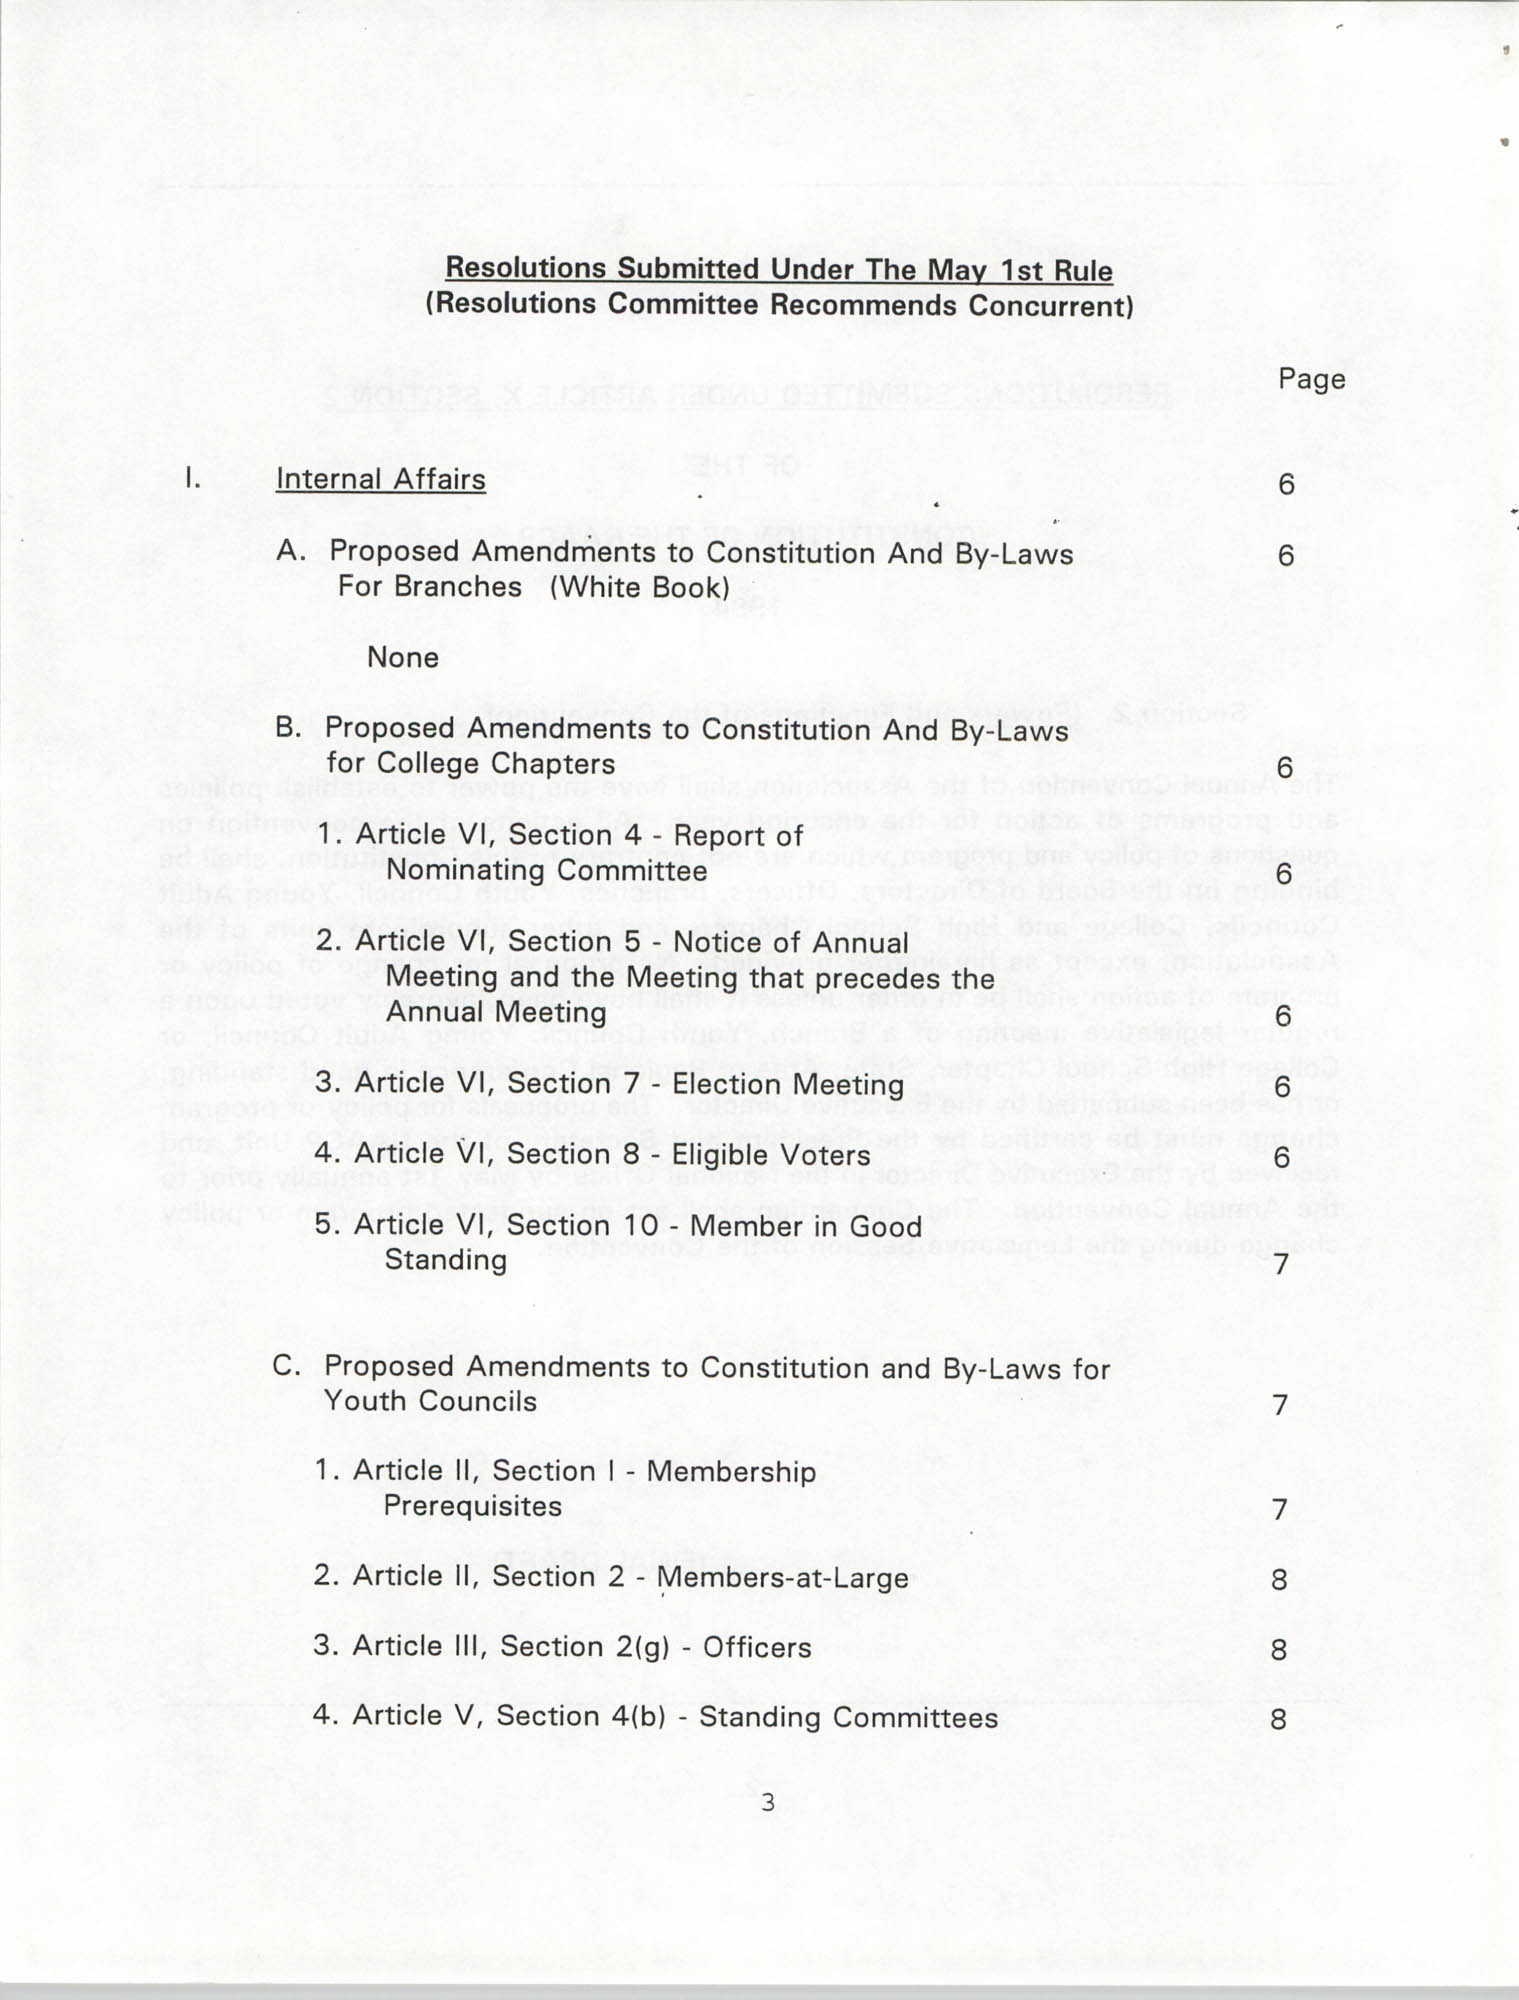 Resolutions Submitted Under Article X, Section 2 of the Constitution of the NAACP, 1994, Page 3